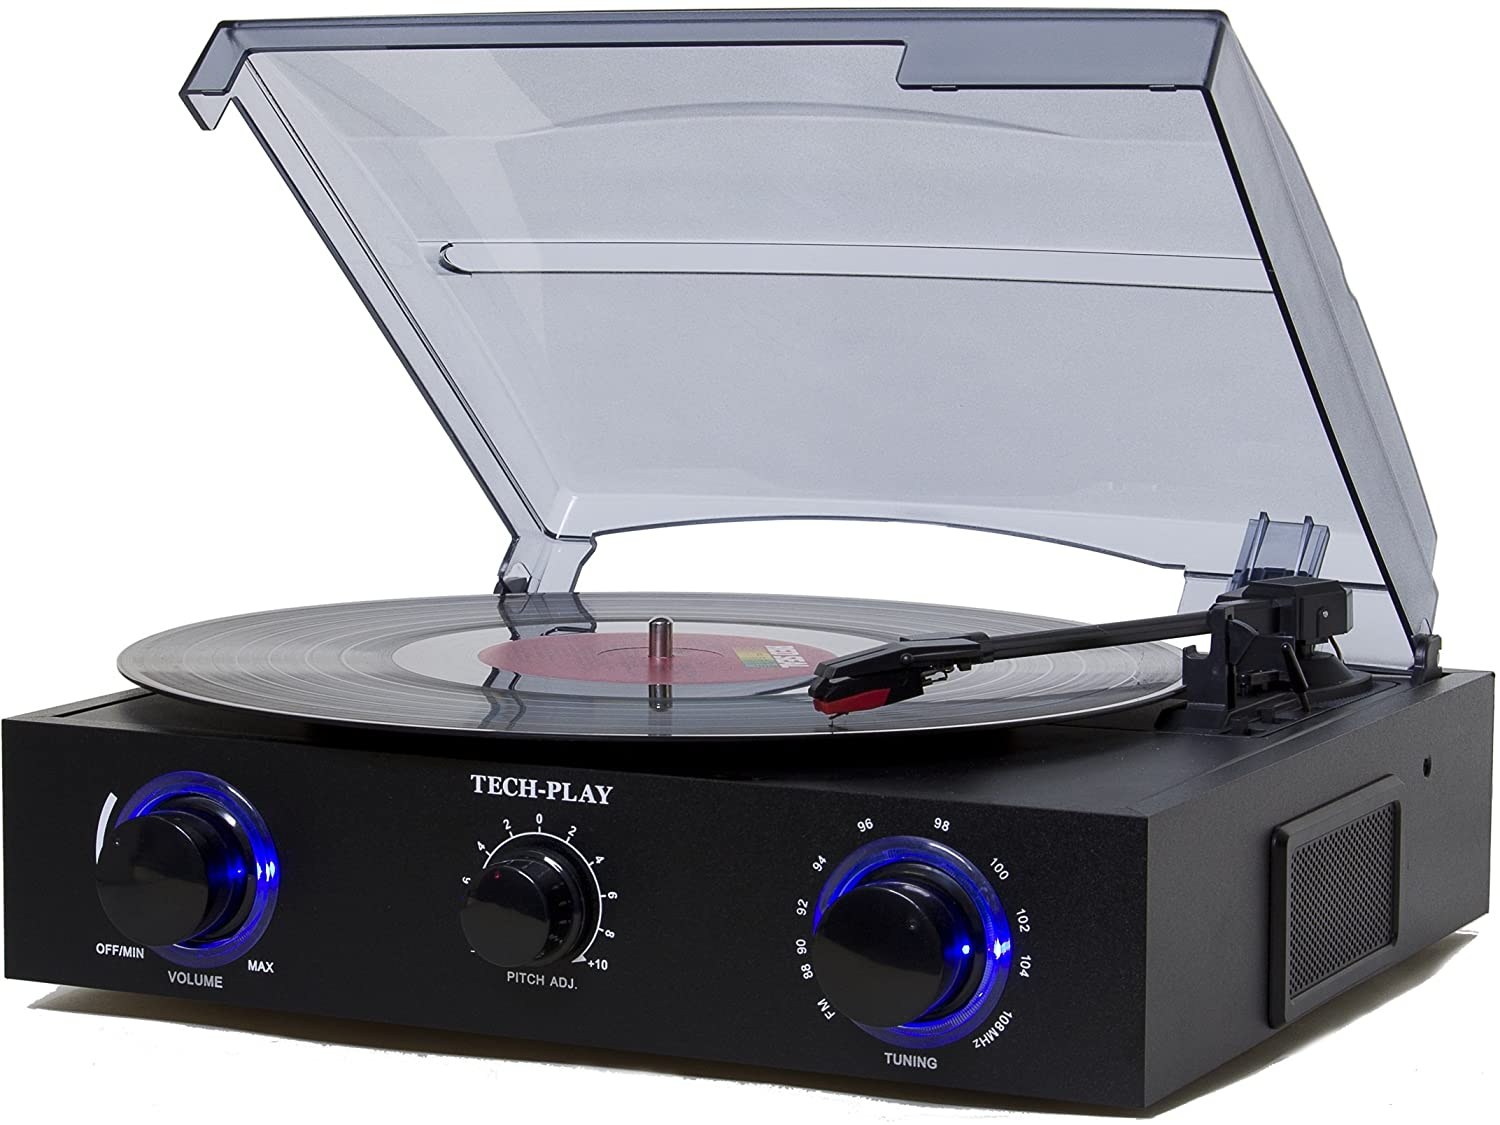 Amazon.com: TechPlay TCP2 BK, 3 Speed (33, 45, 78 RPM)turntable With Pitch  Control, FM Radio, RCA Out Jacks, Headphone Jack, And Built In Stereo  Speakers.